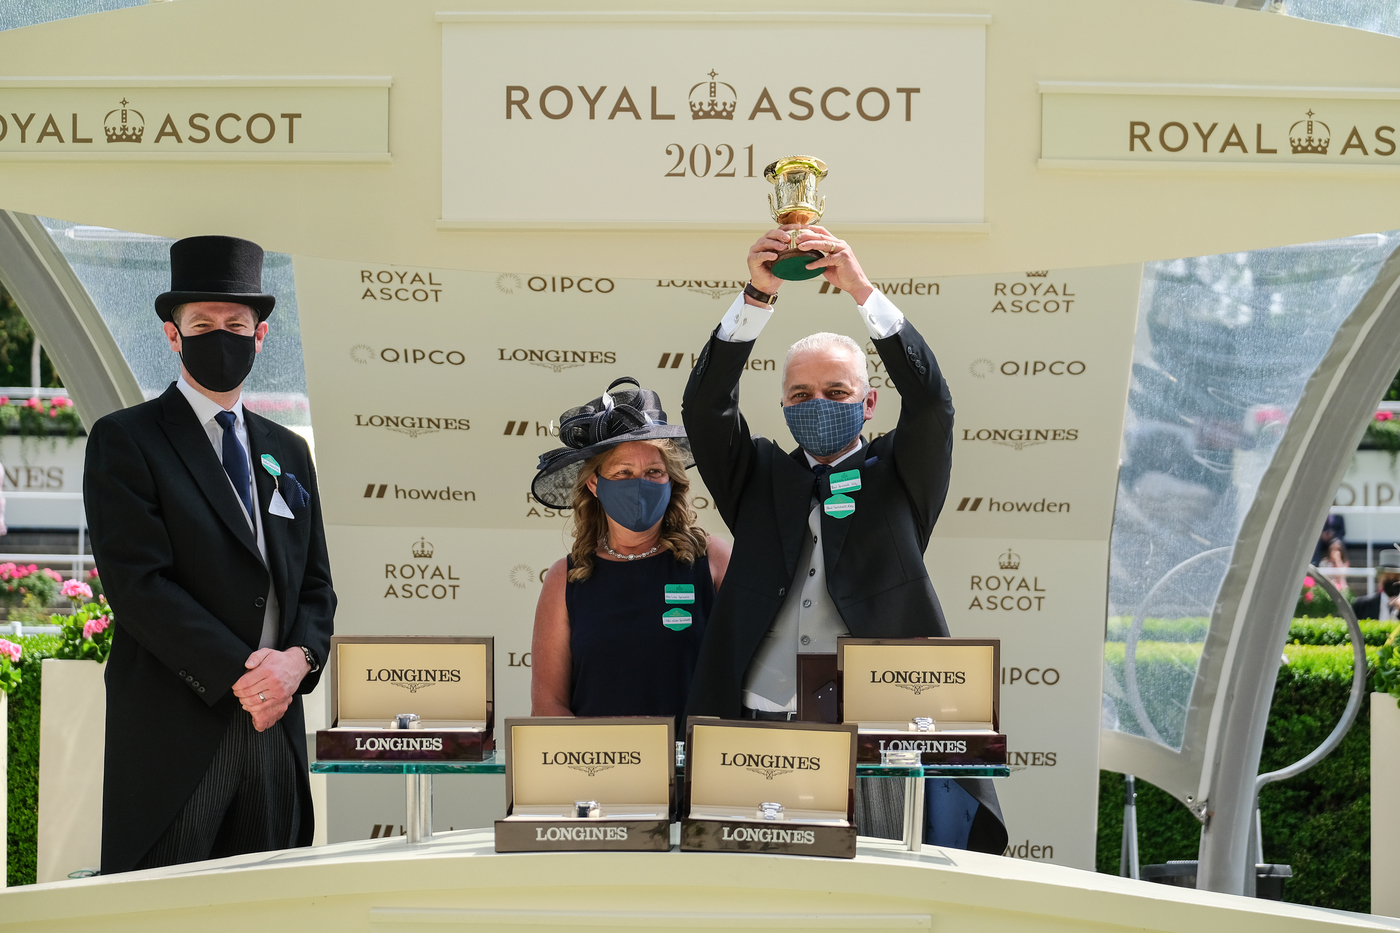 Longines Flat Racing Event: World-class jockeys gather at Royal Ascot for five days of enthralling races timed by Longines 2